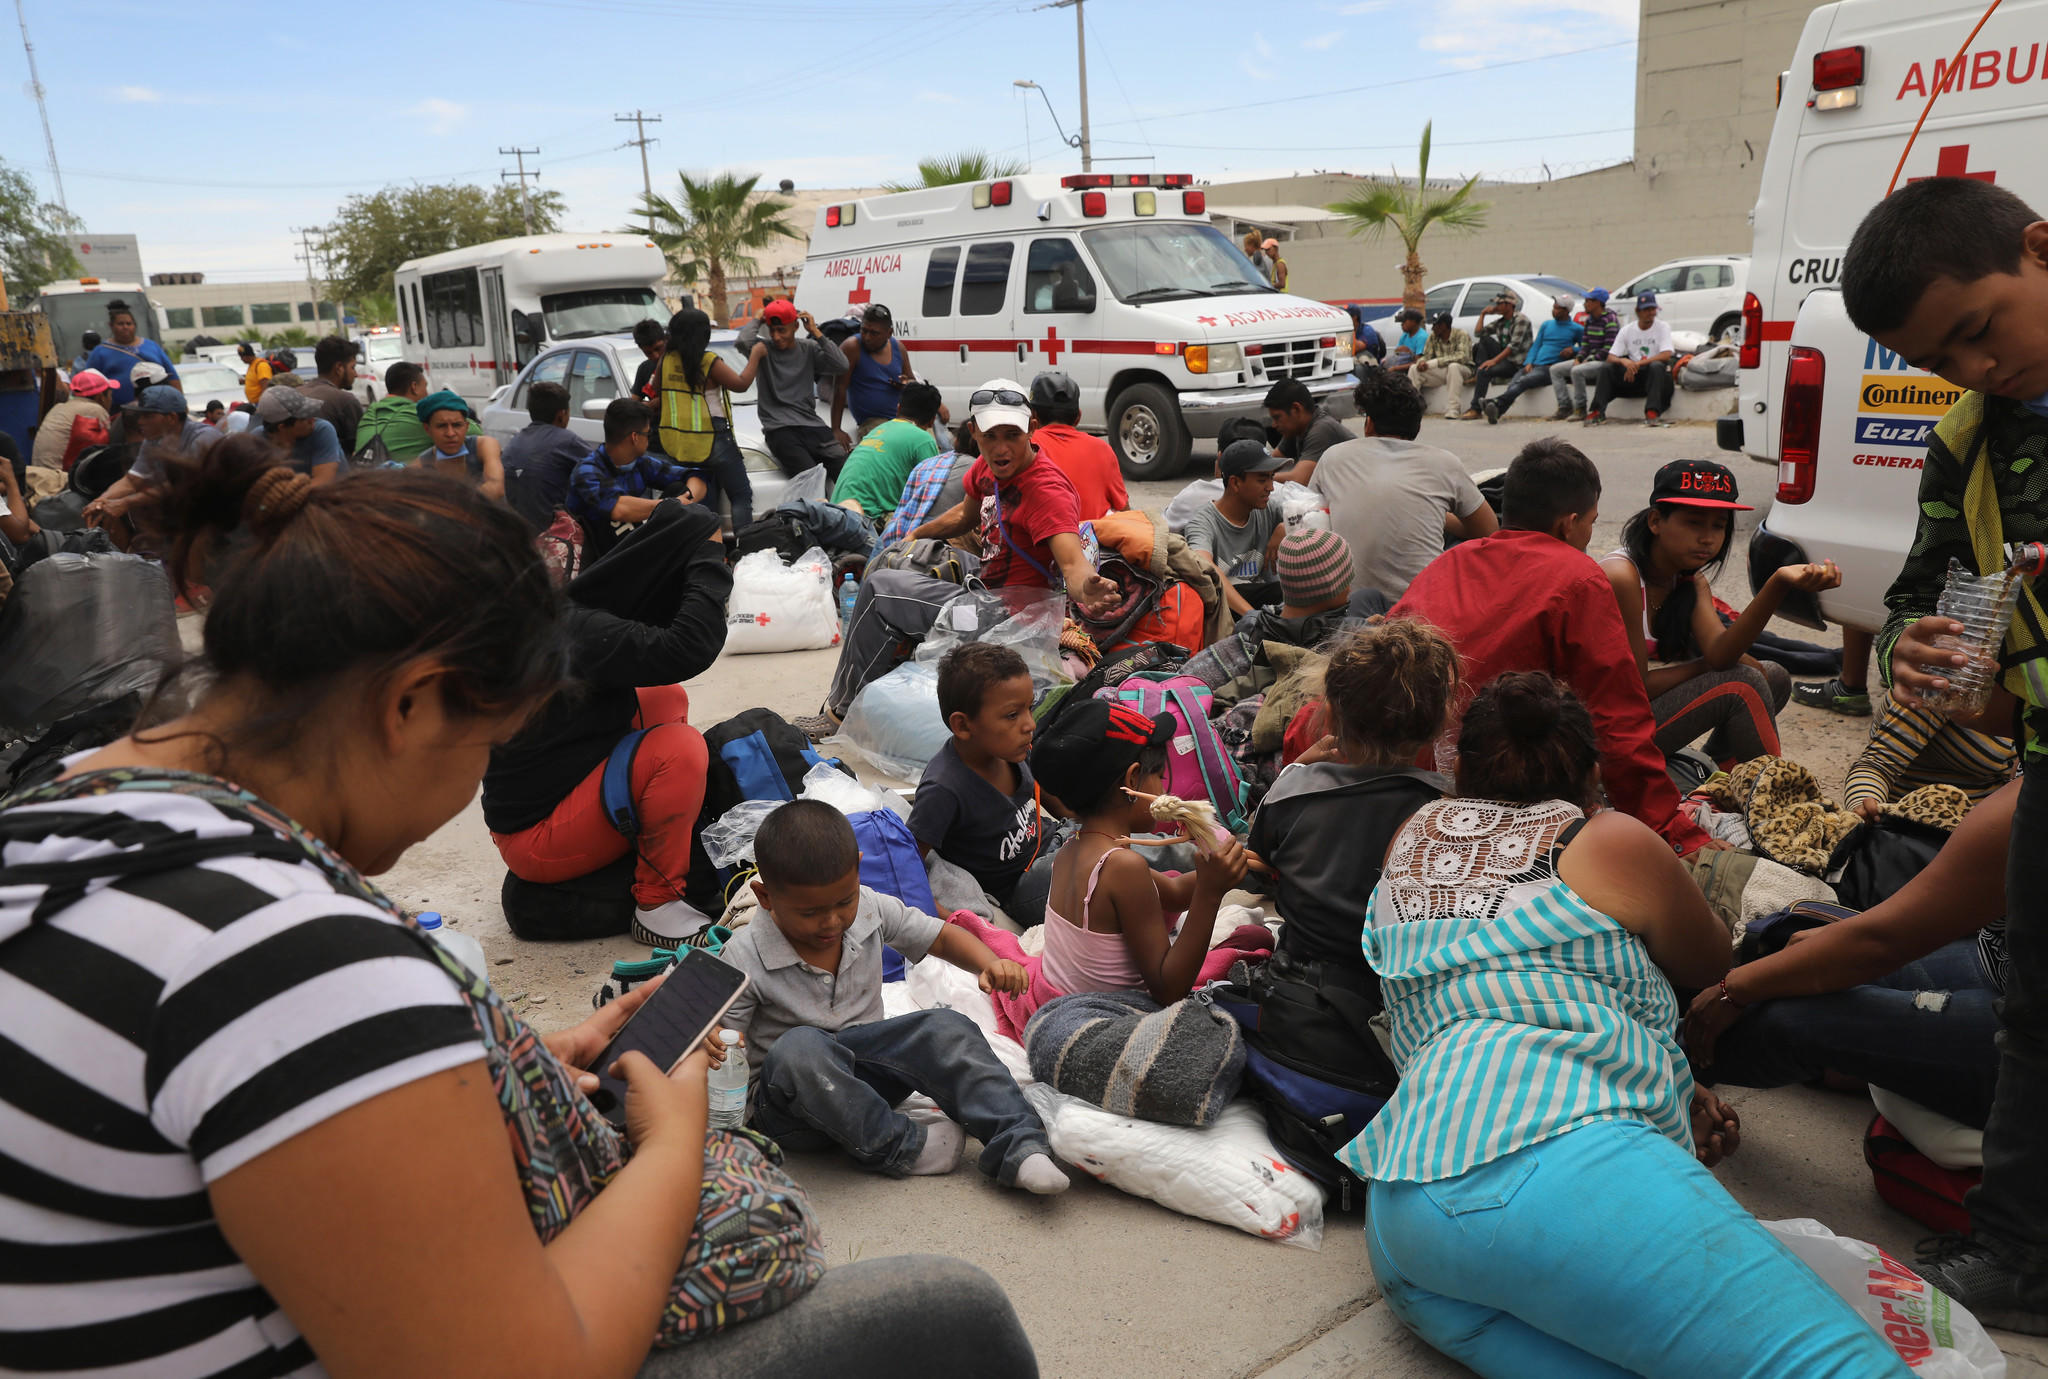 Caravan of migrants hope to enter the United States to seek asylum